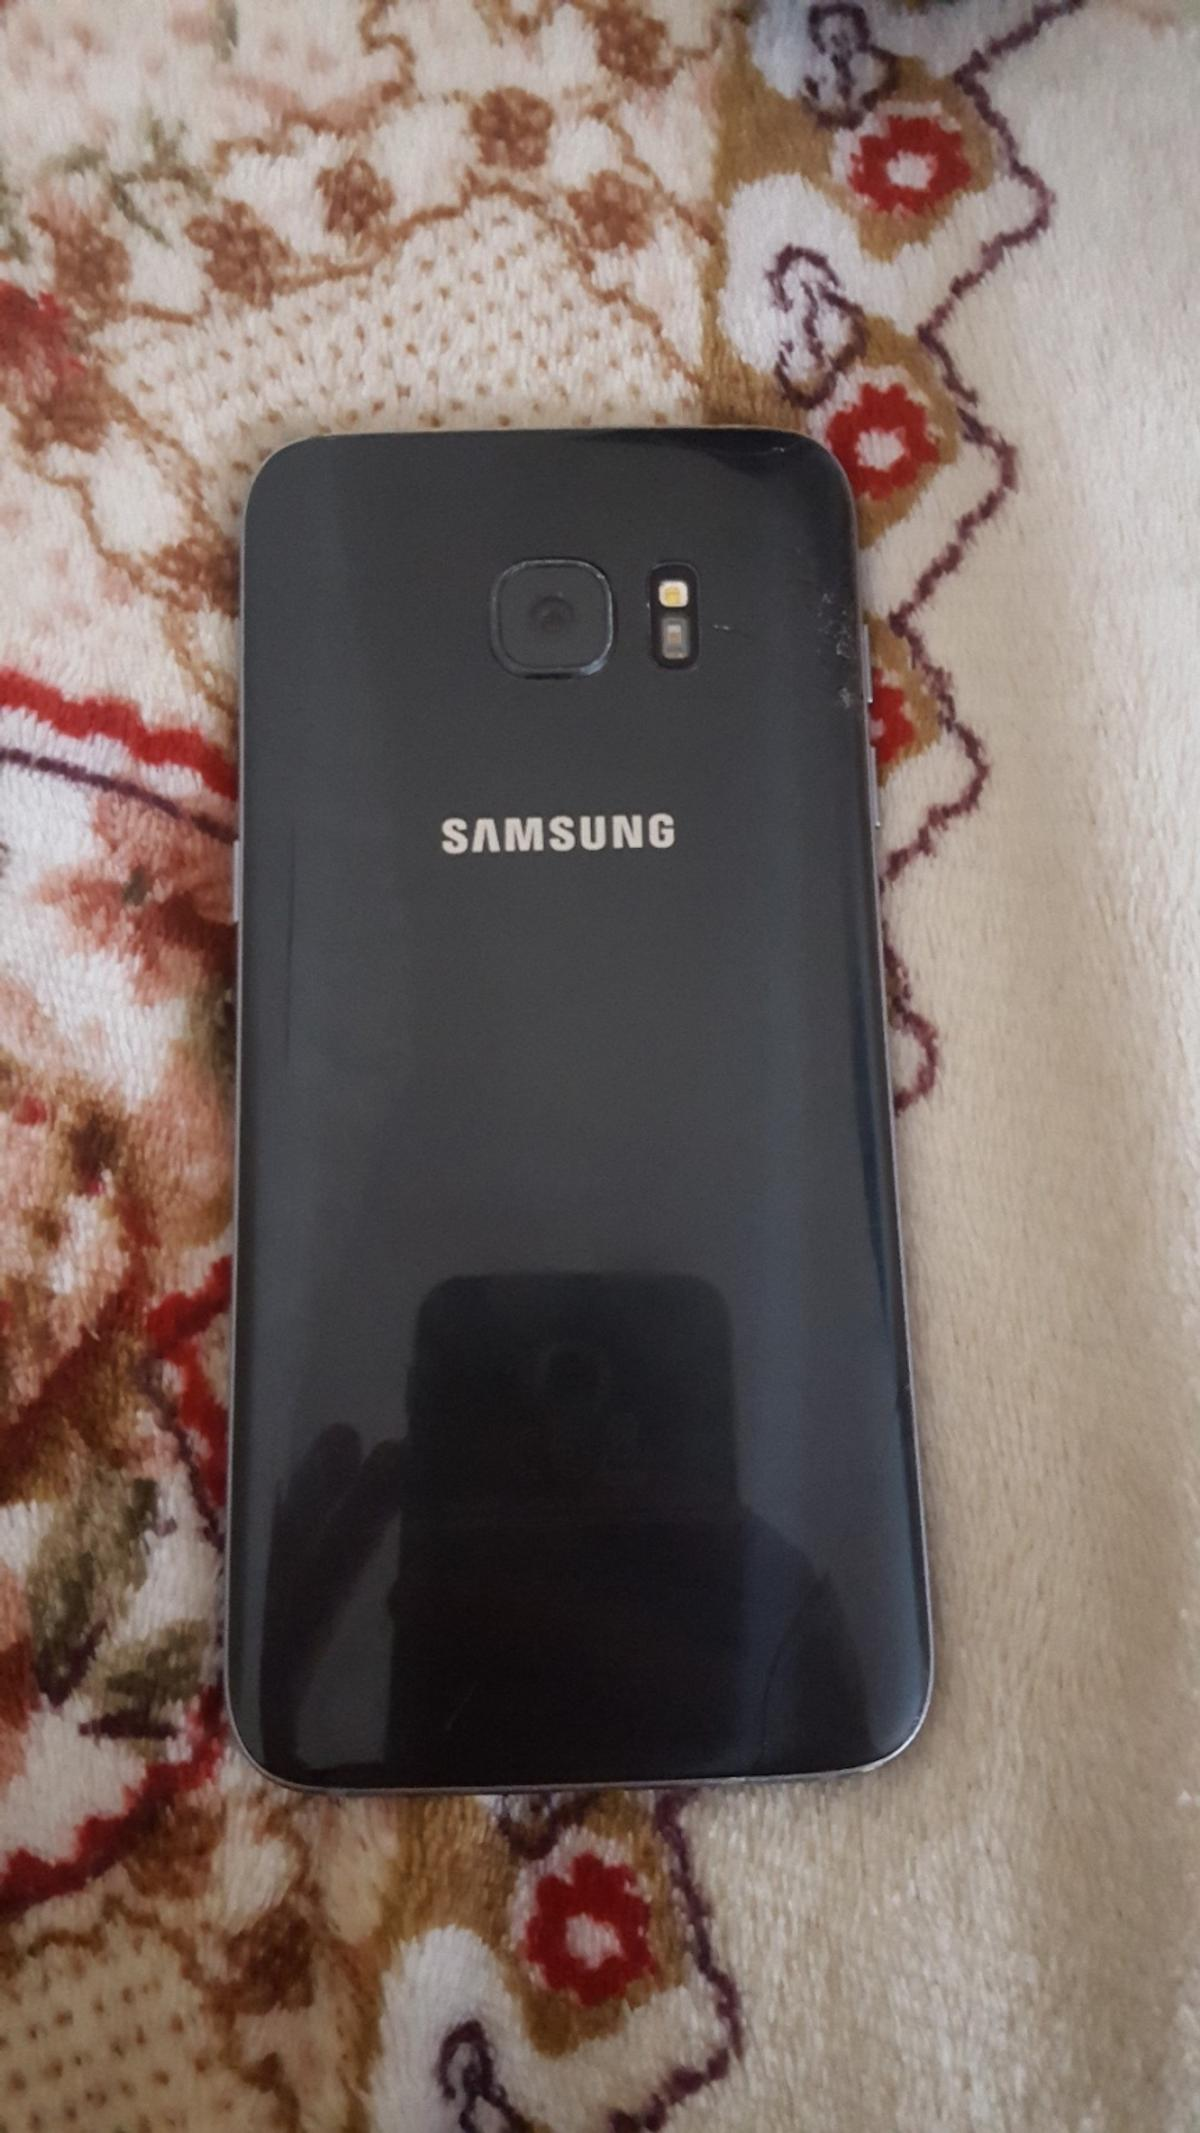 Samsung Galaxy s7 edge! in M9 Manchester for £50 00 for sale